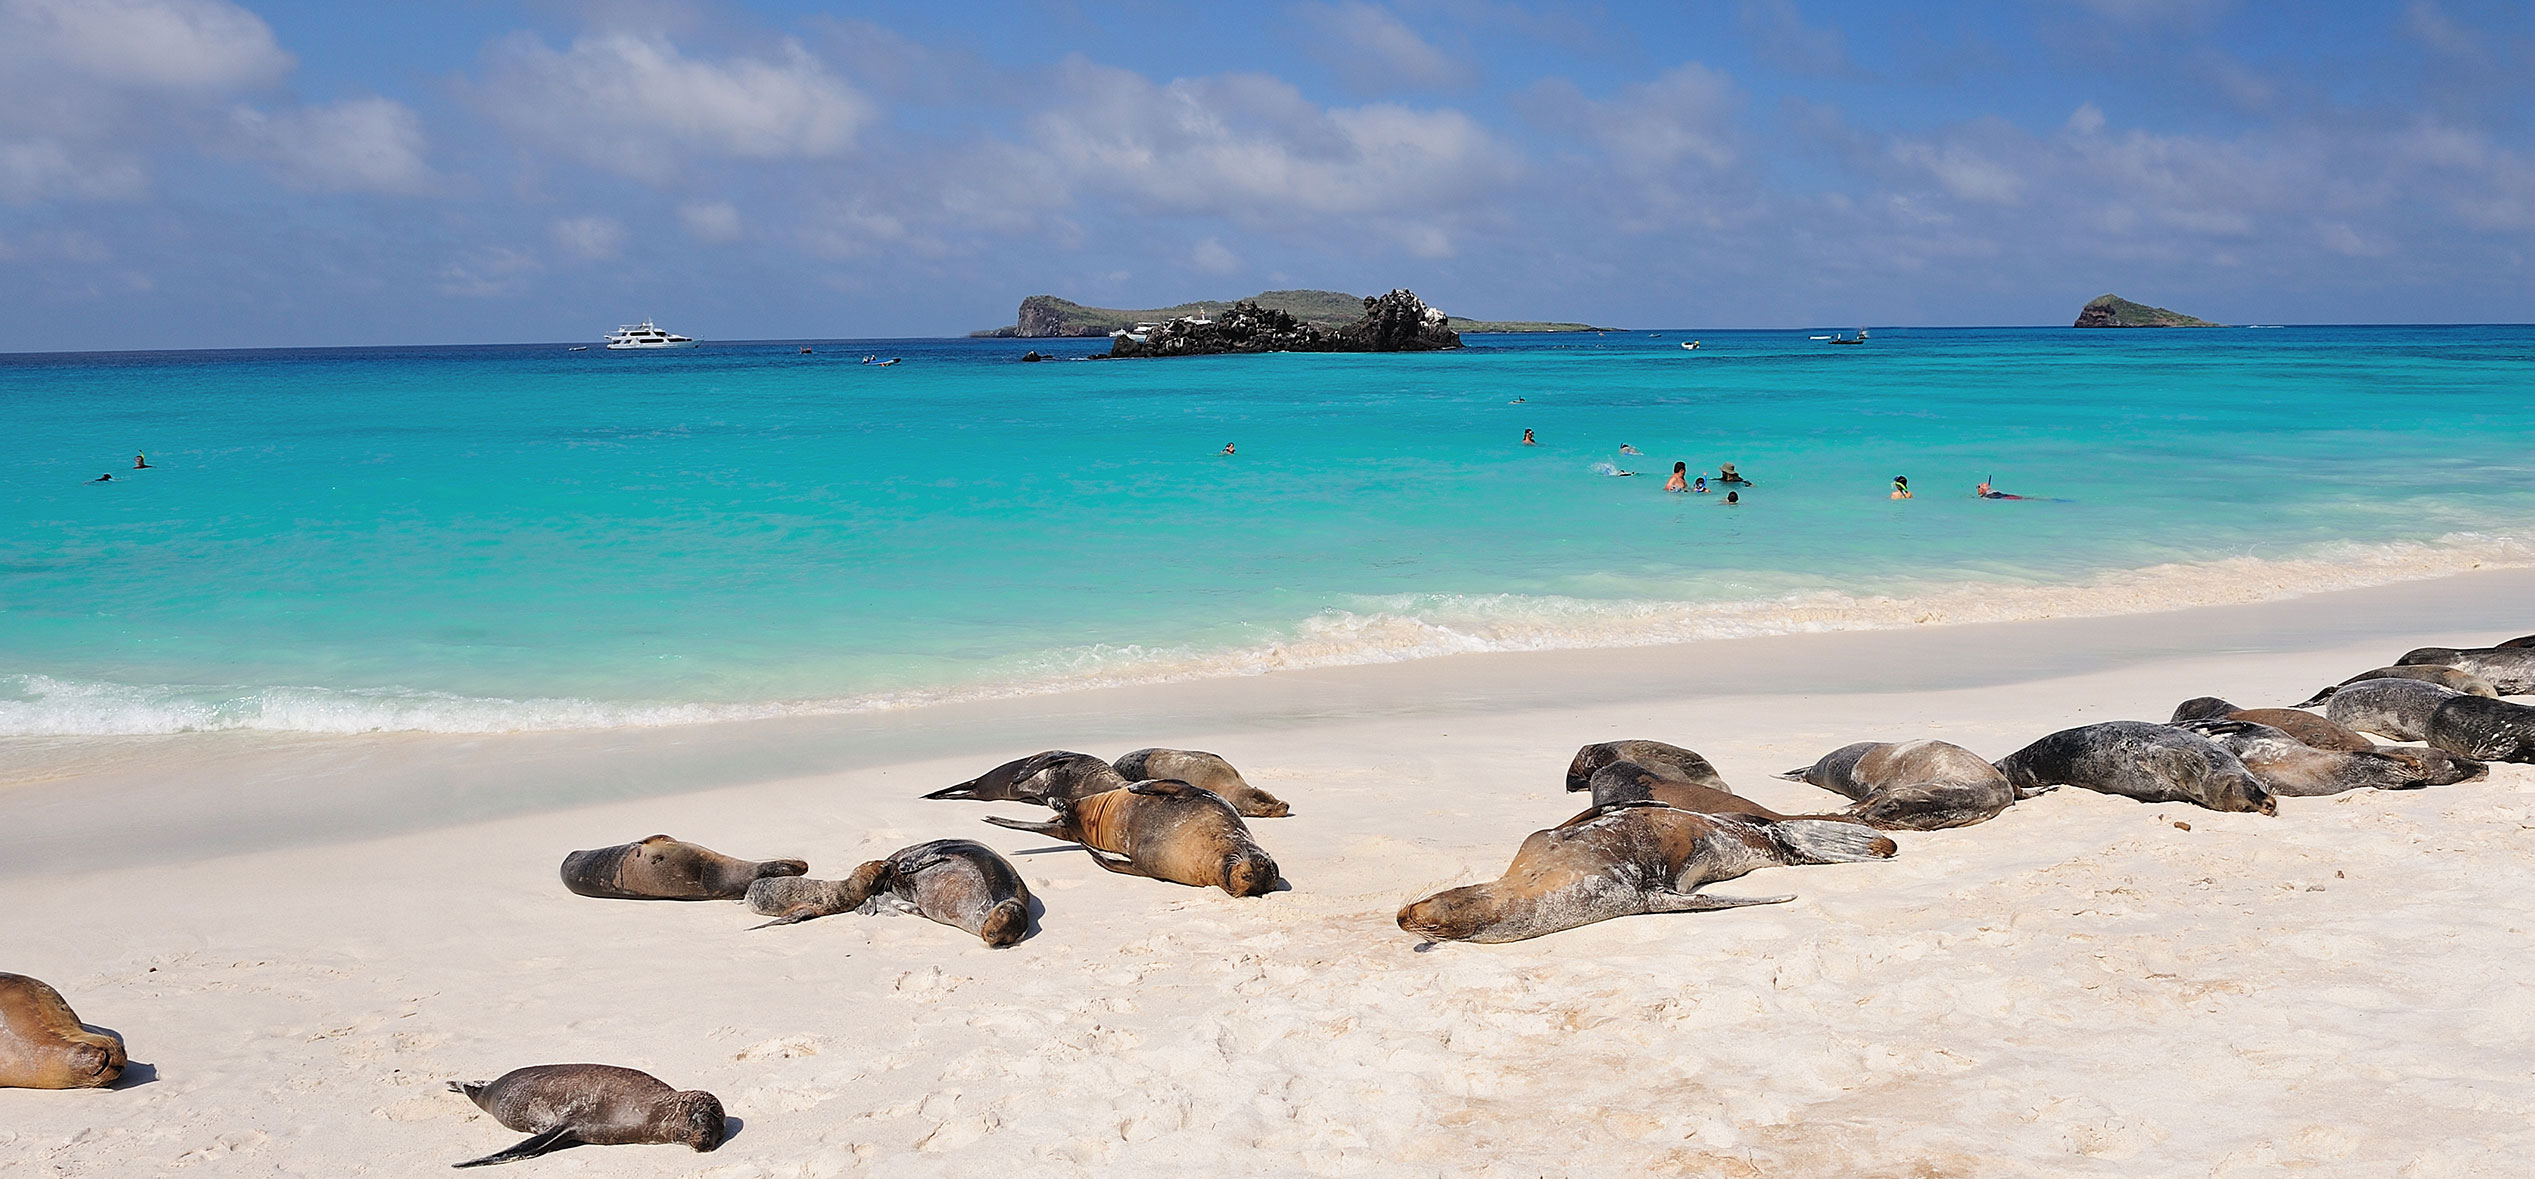 The Galapagos beaches